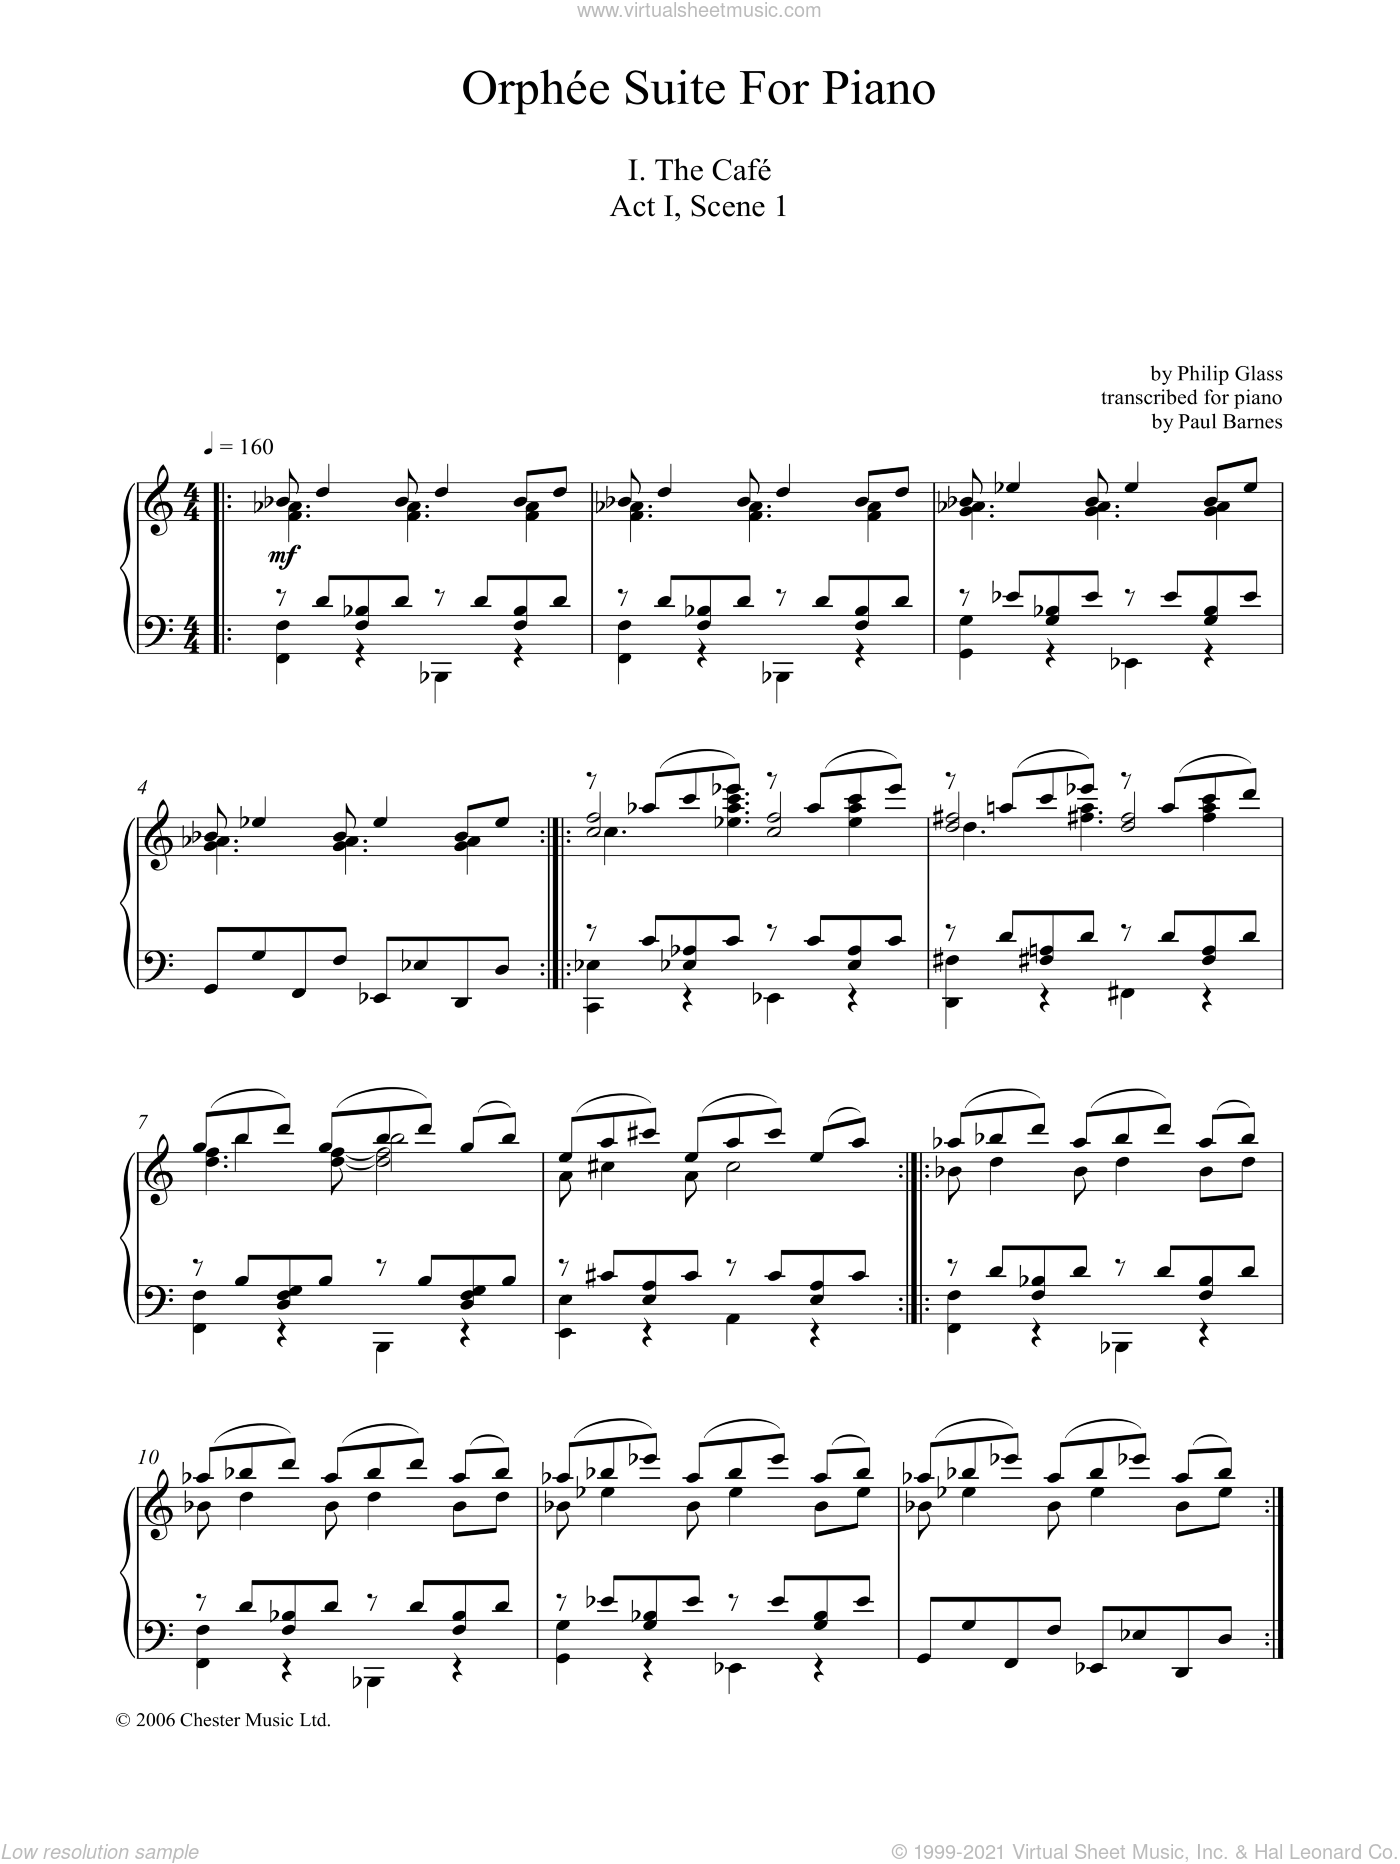 Orphee Suite For Piano, I. The Cafe, Act I, Scene 1 sheet music for piano solo by Philip Glass. Score Image Preview.